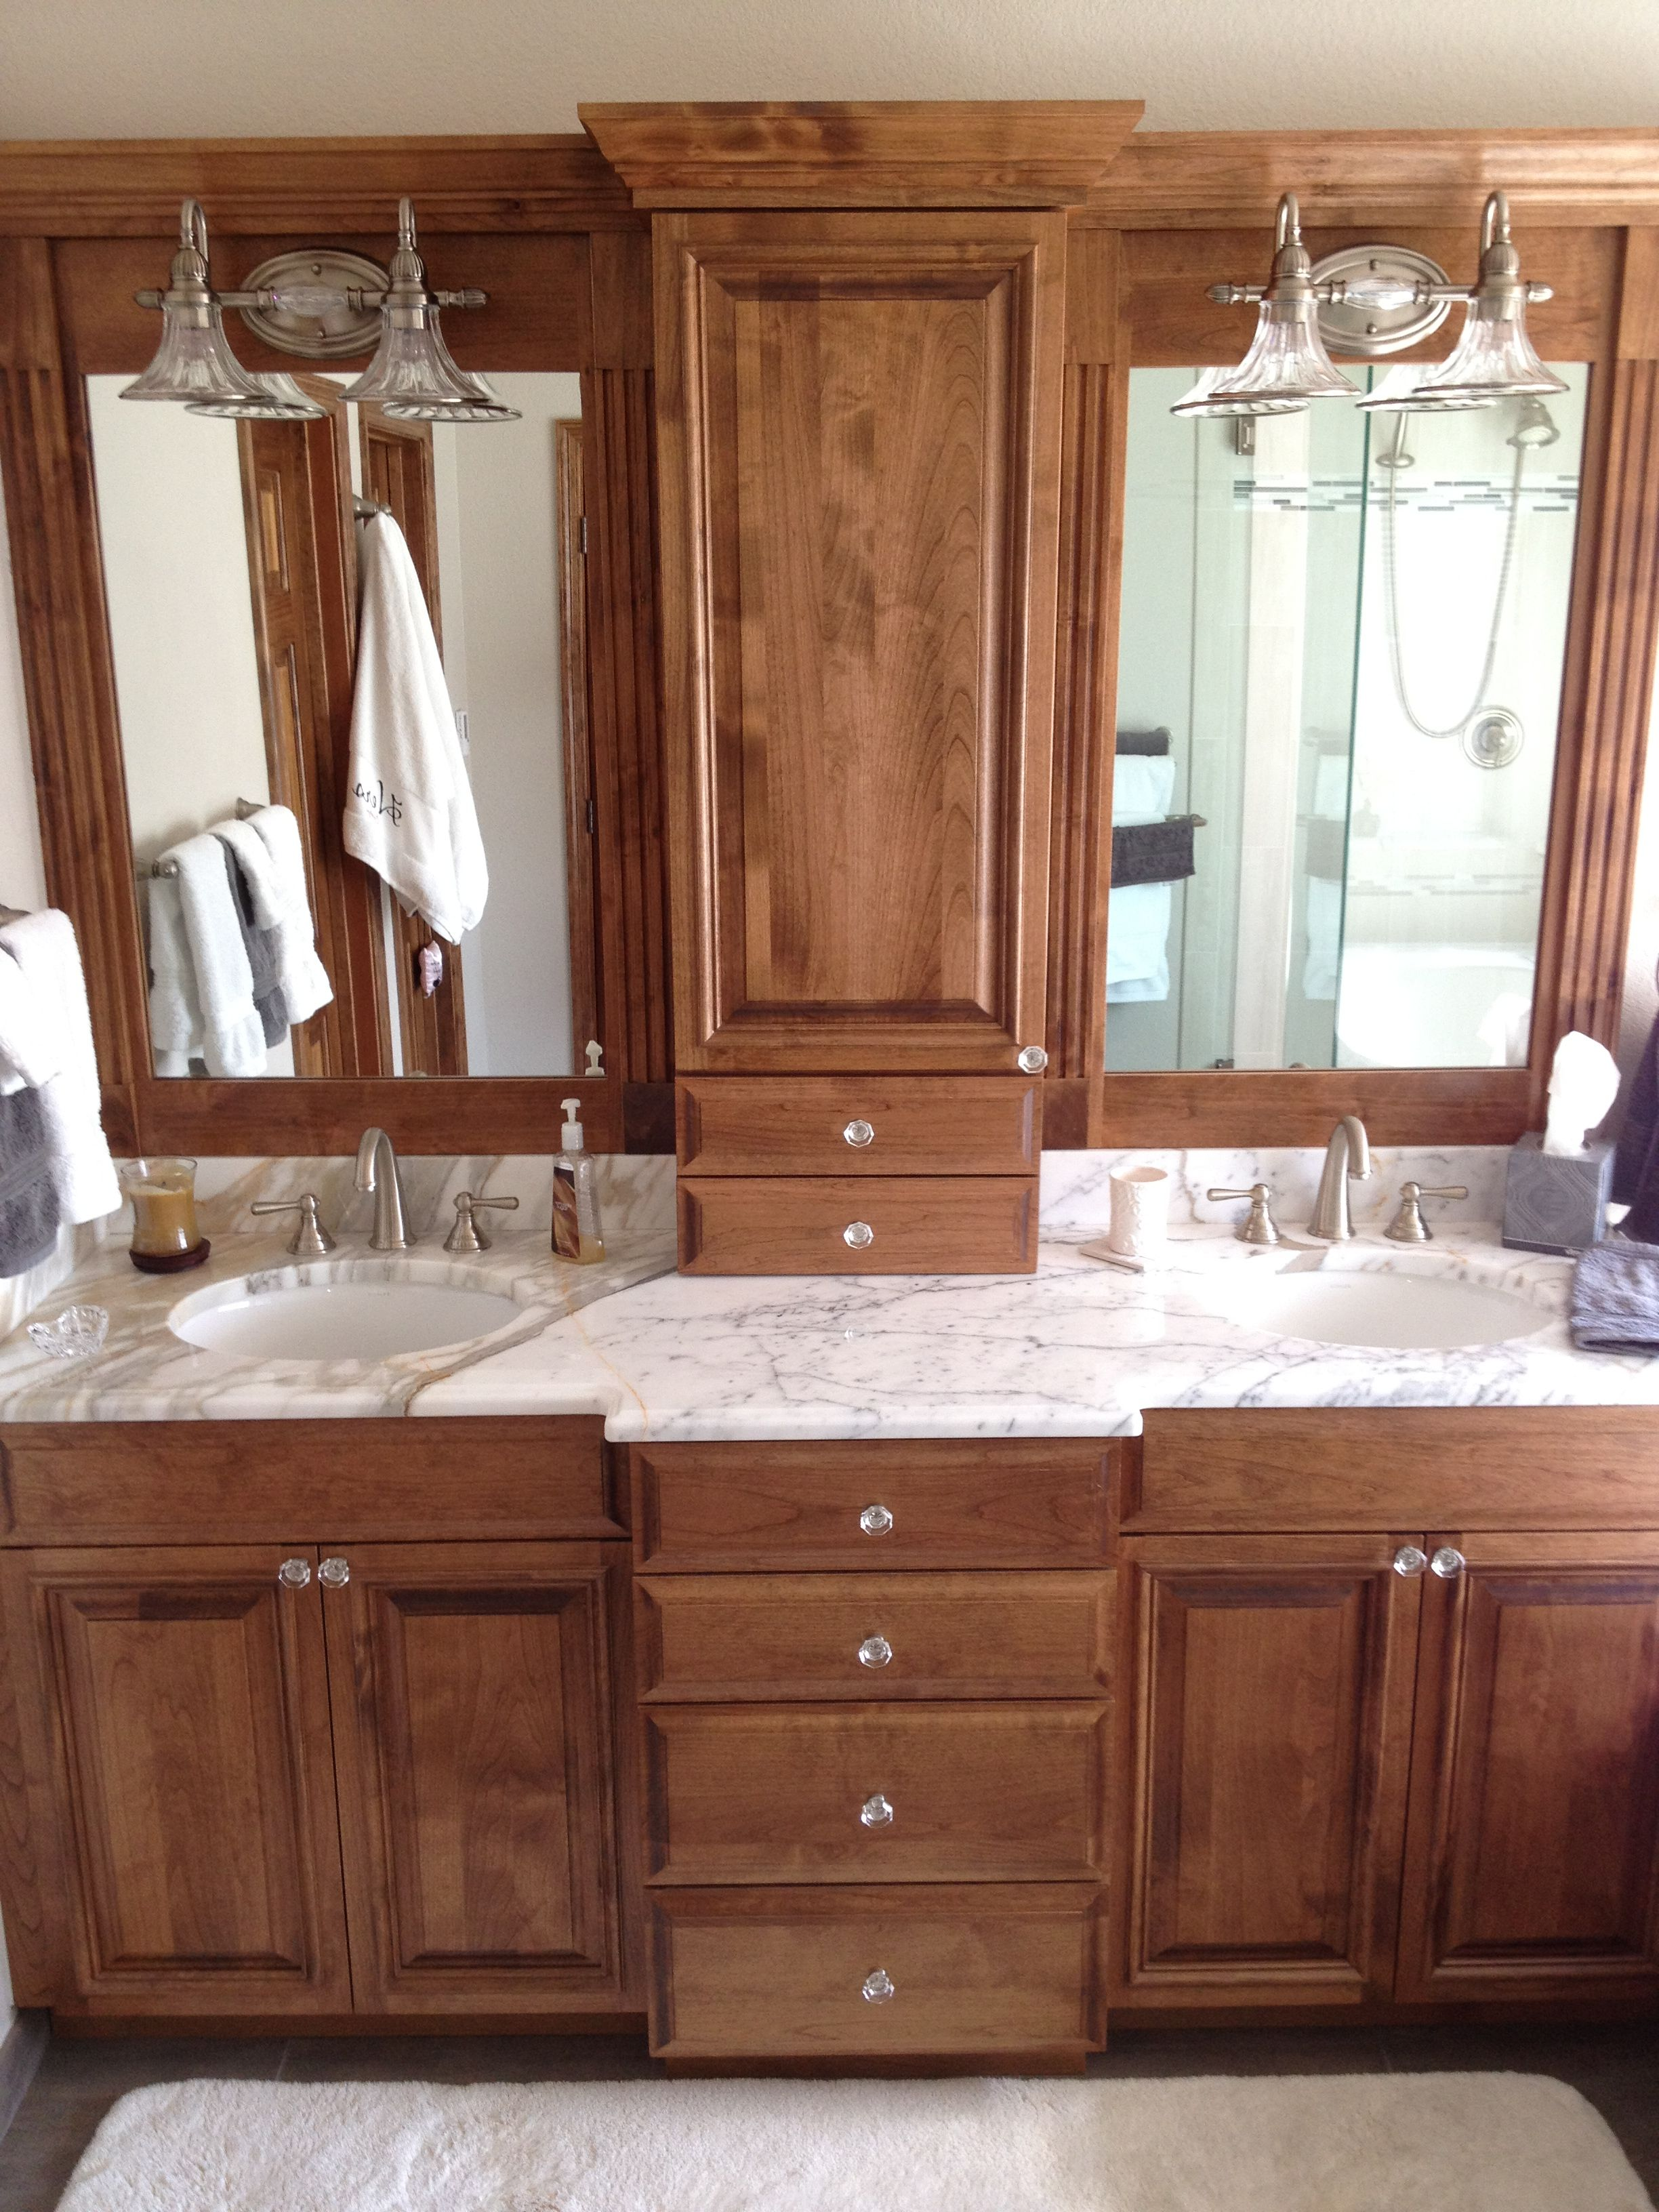 Mirrors Over Double Vanities Custom 80inch Vanity And Mirrors With Center Countertop